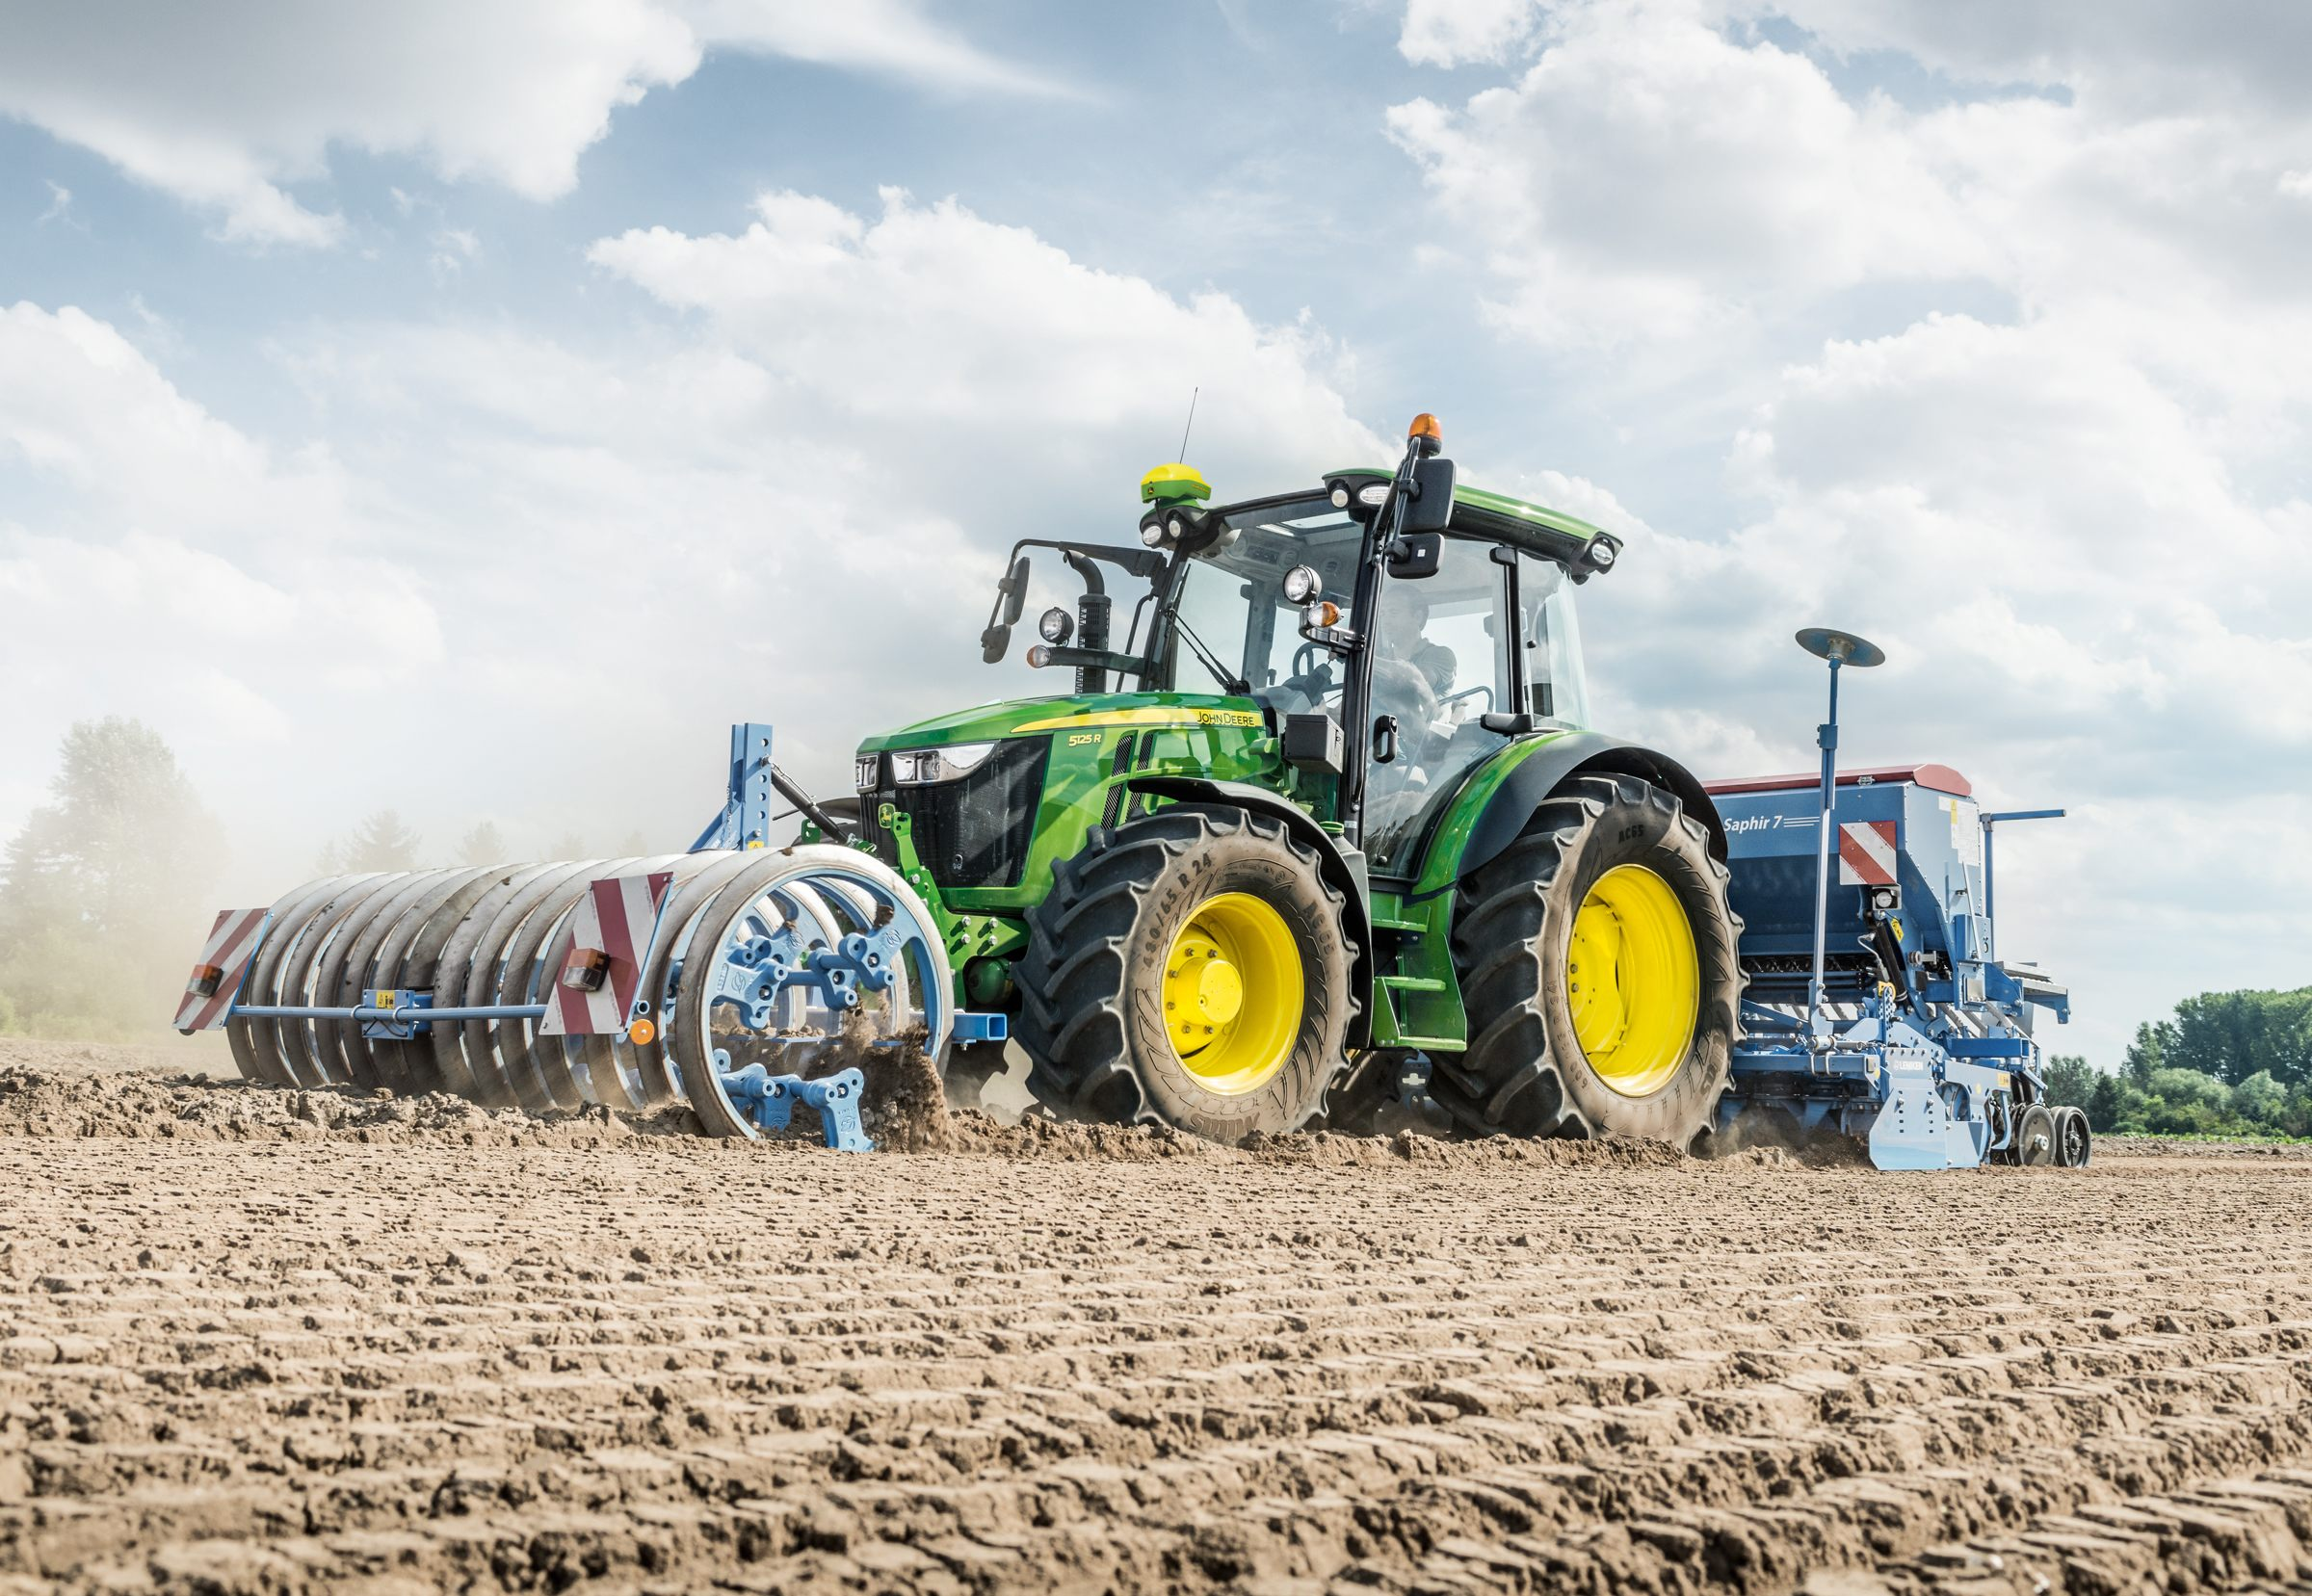 John Deere's updated 5R Series tractors will be available AutoTrac and ISObus-ready for 2019.